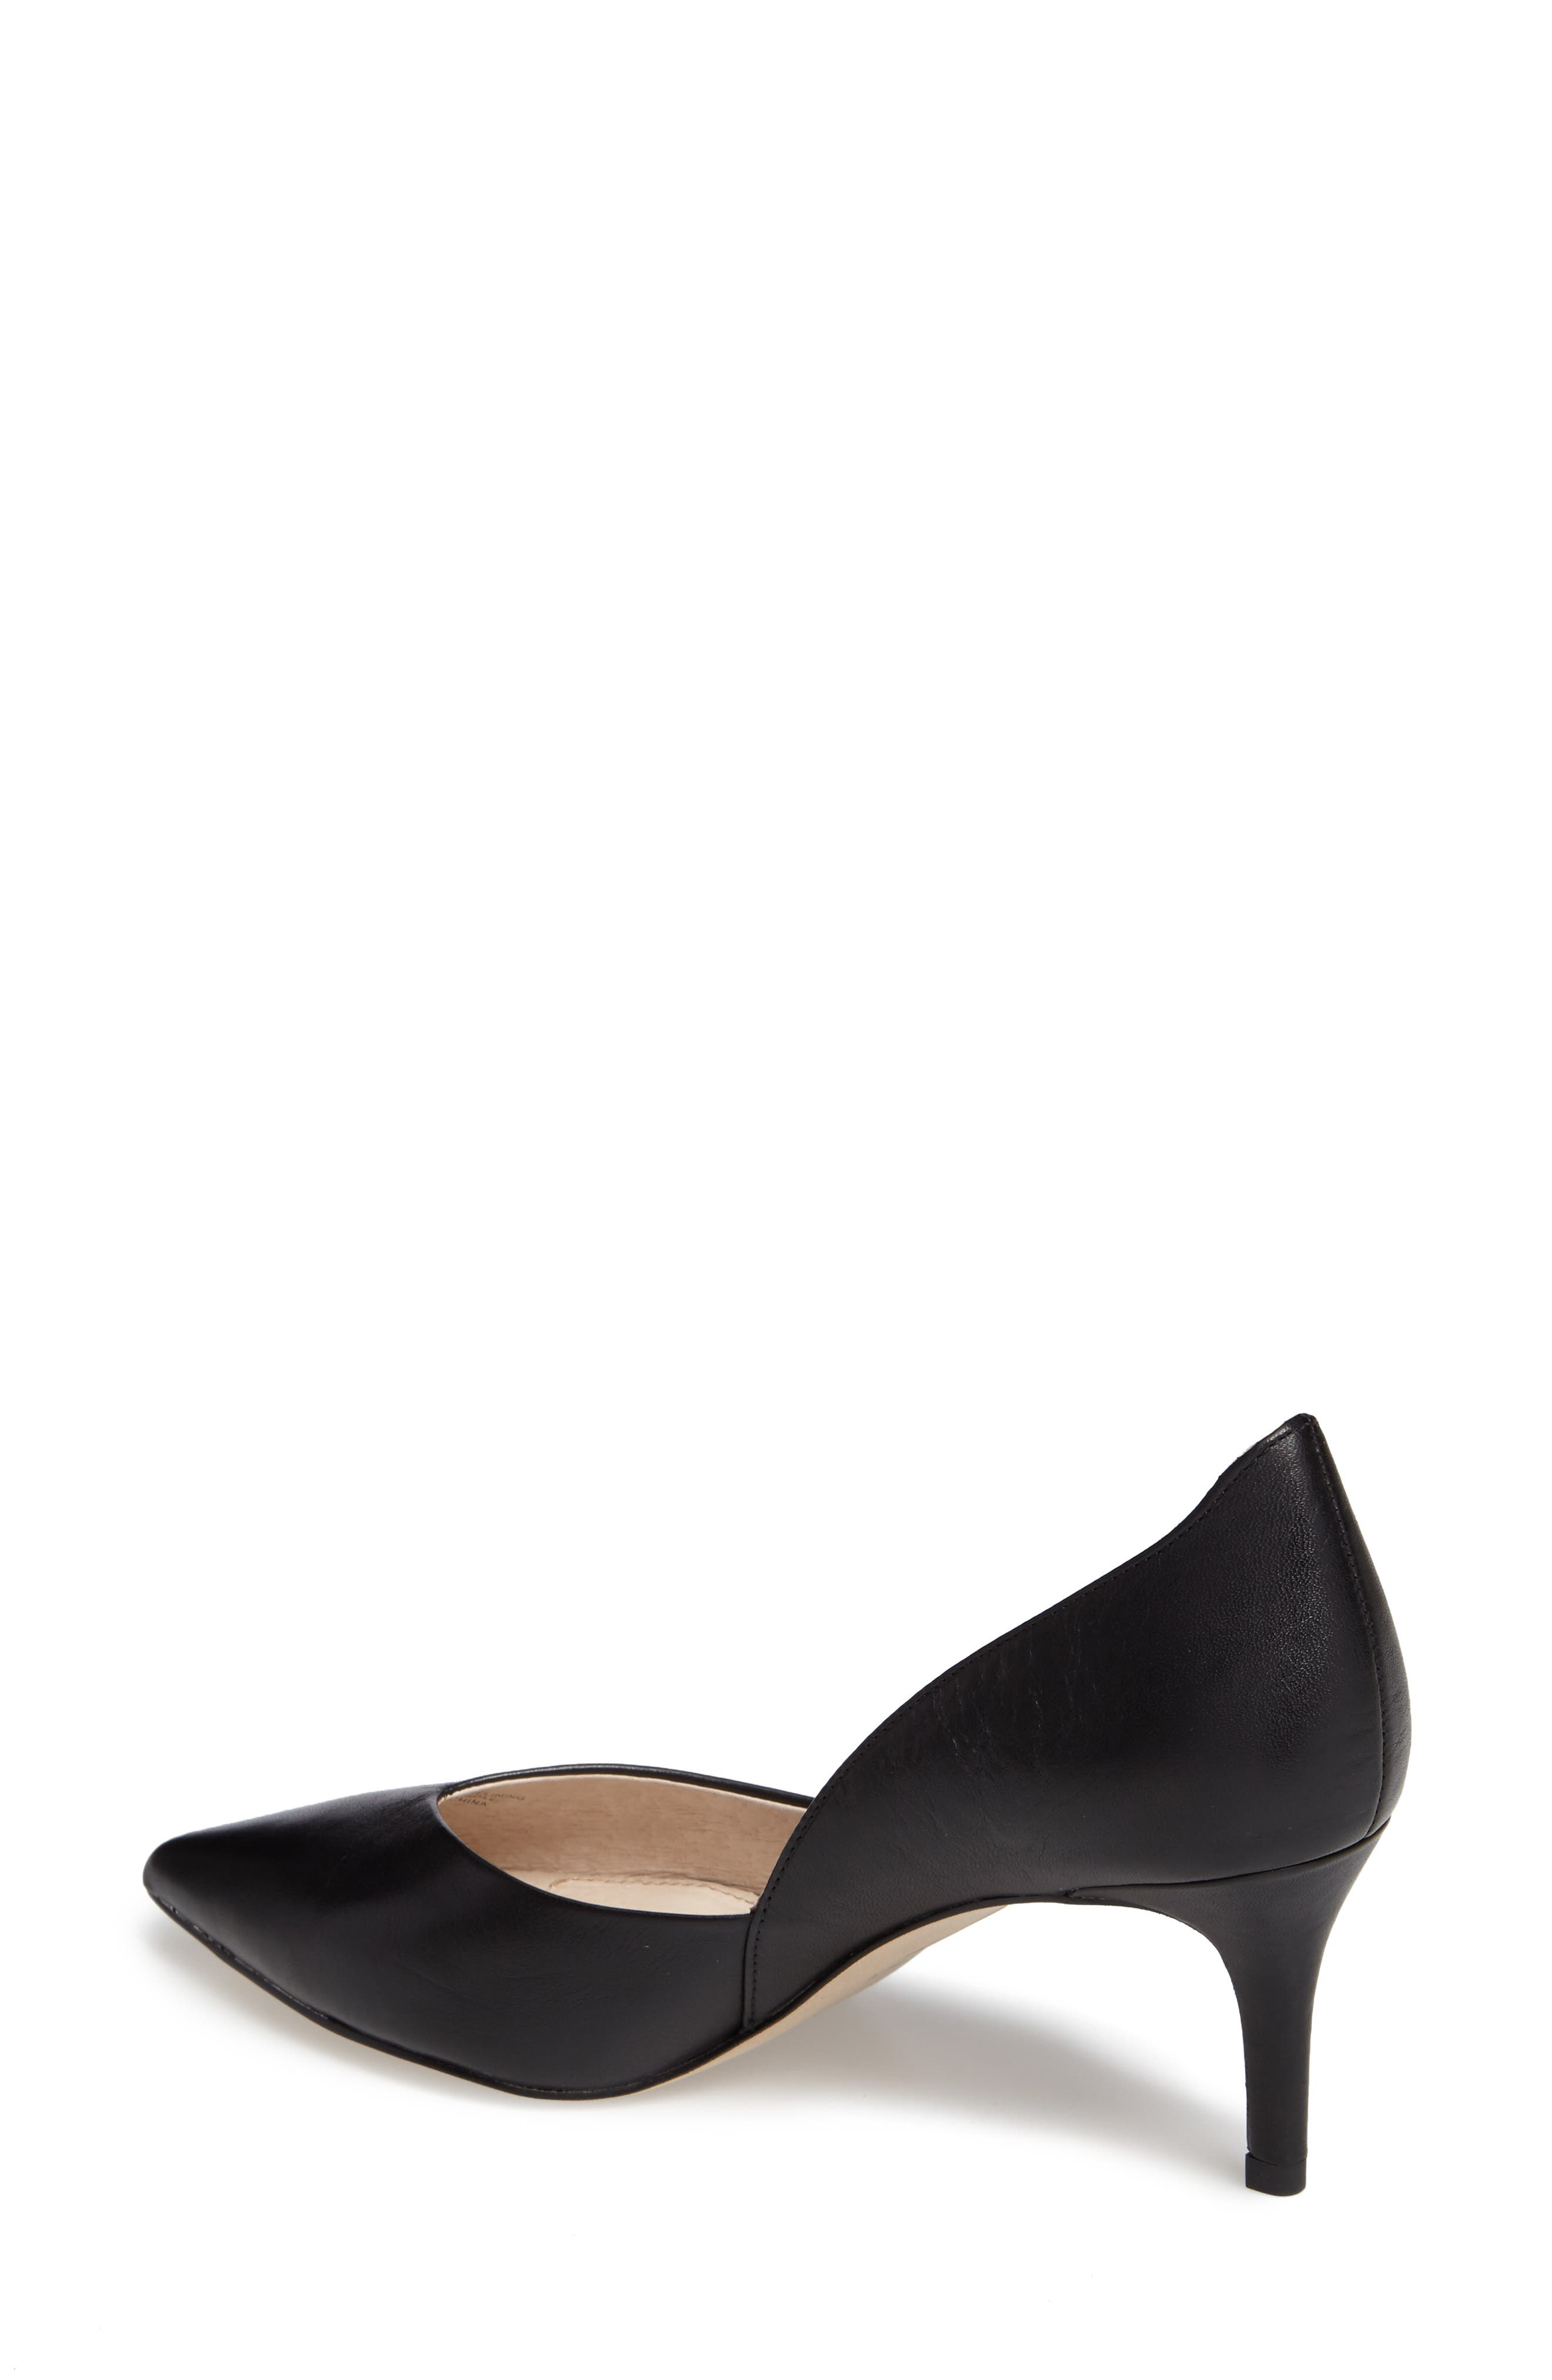 Jacee Pointy Toe Pump,                             Alternate thumbnail 2, color,                             002